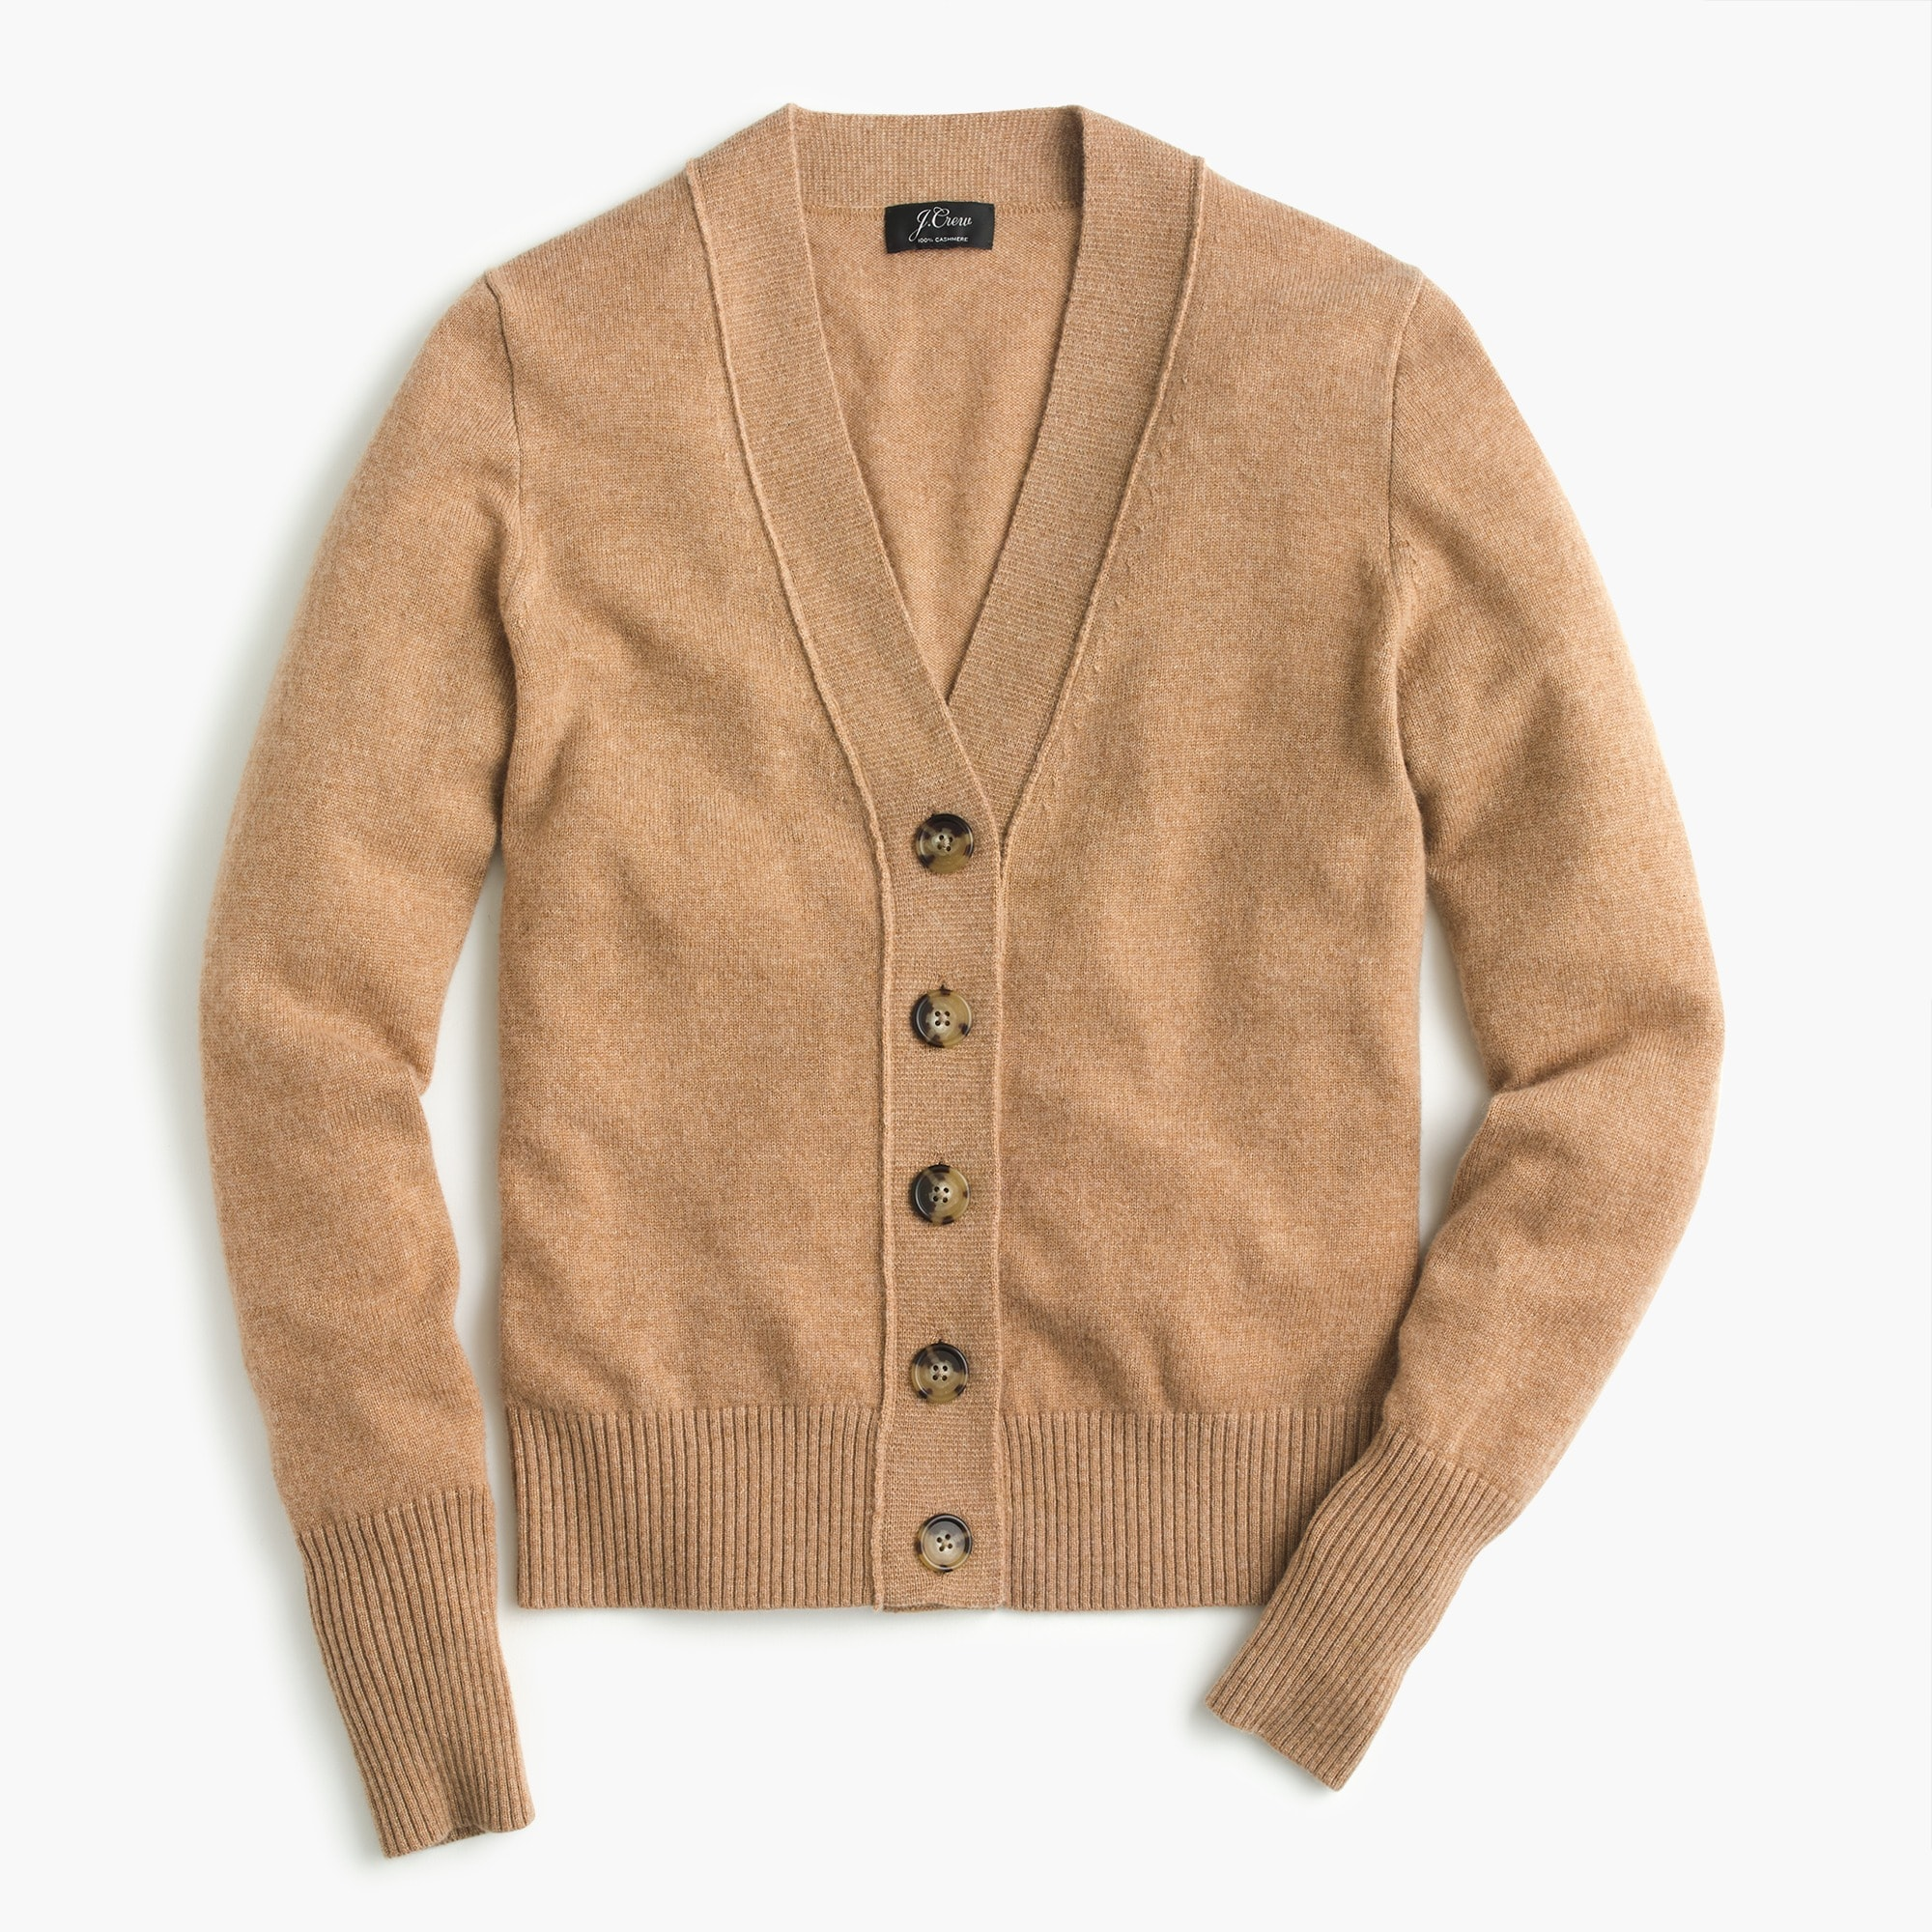 Everyday cashmere cropped cardigan sweater